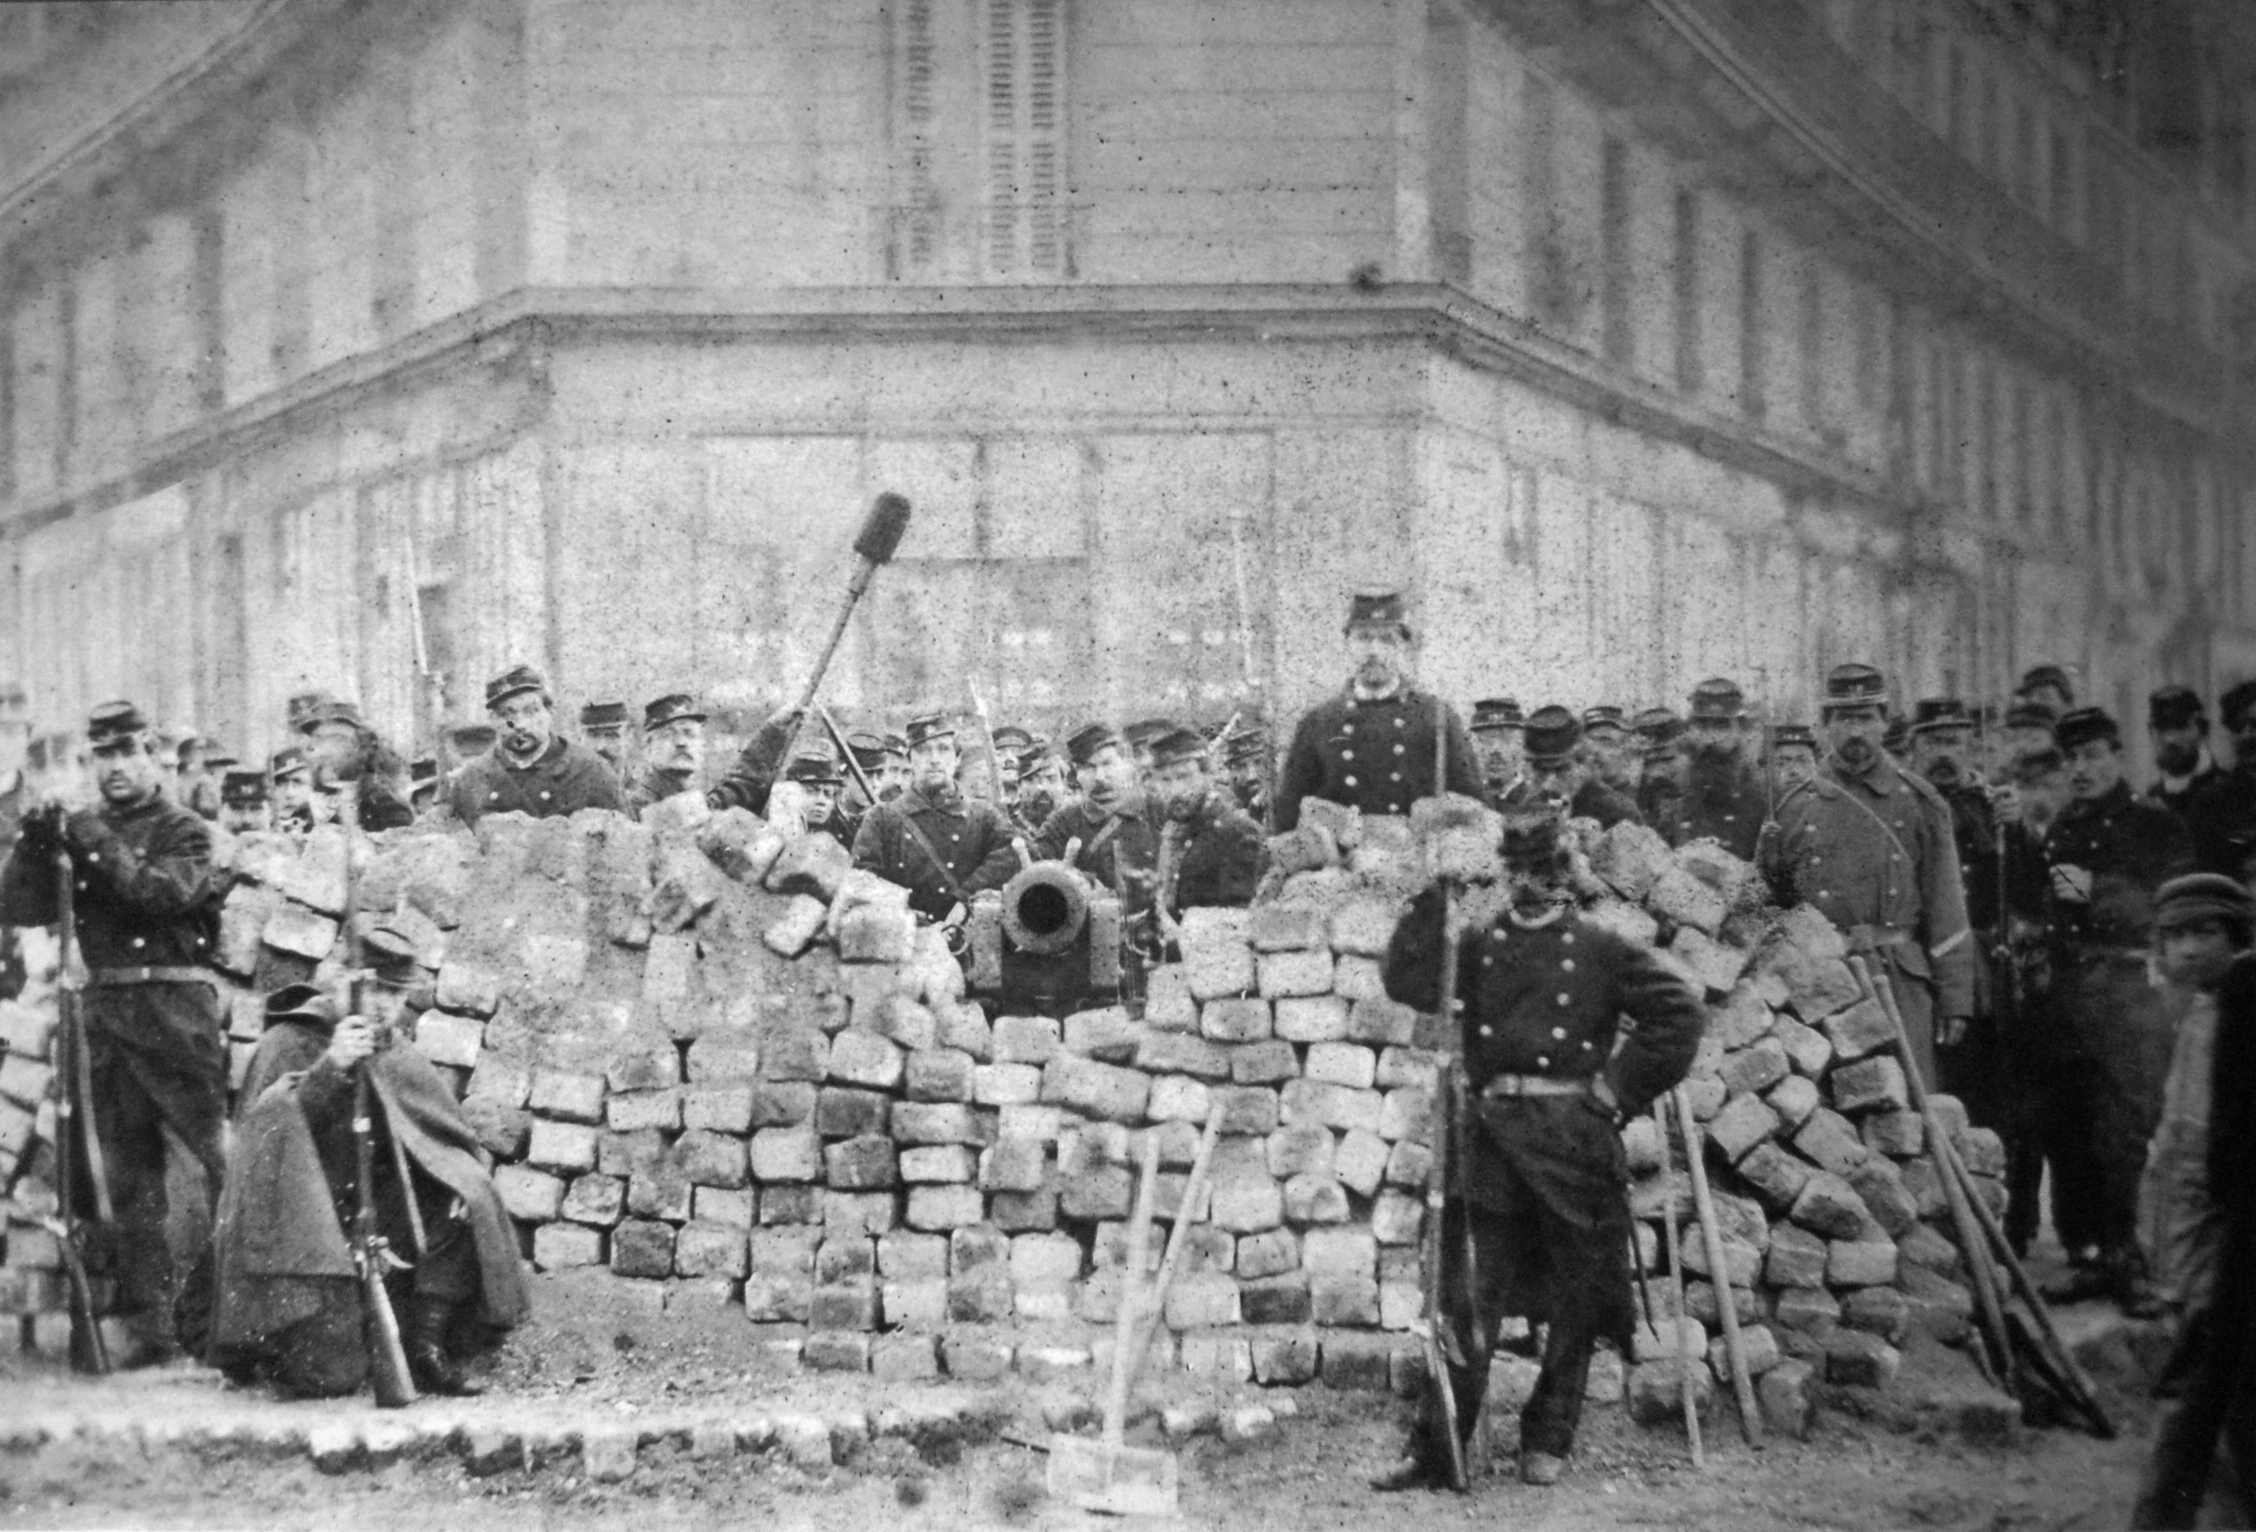 https://upload.wikimedia.org/wikipedia/commons/2/2e/Barricade_Voltaire_Lenoir_Commune_Paris_1871.jpg